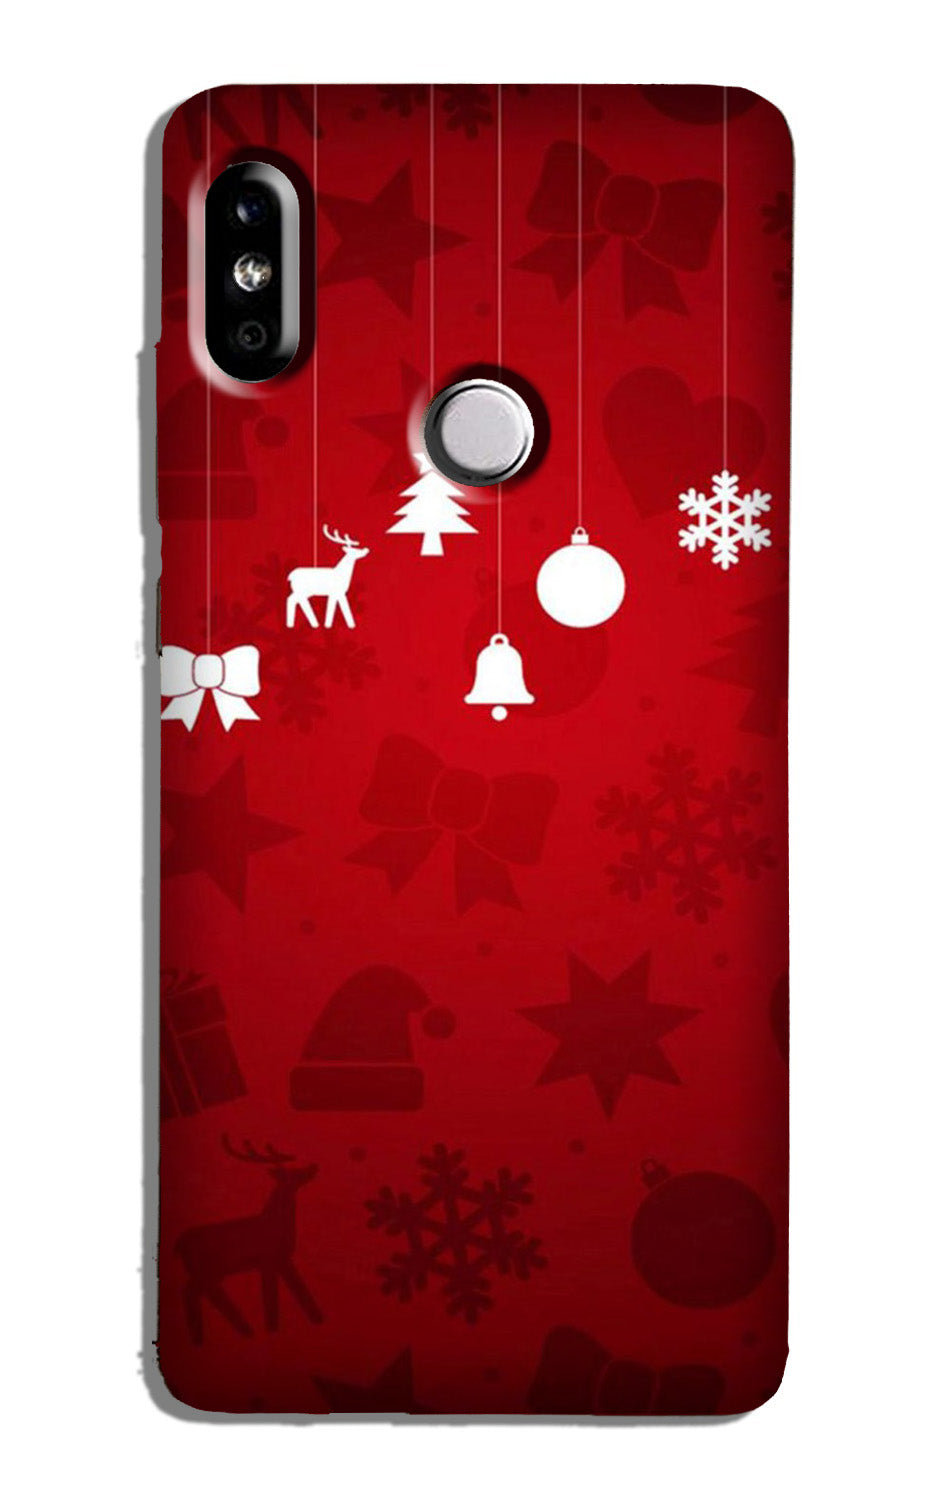 Christmas Case for Redmi 6 Pro